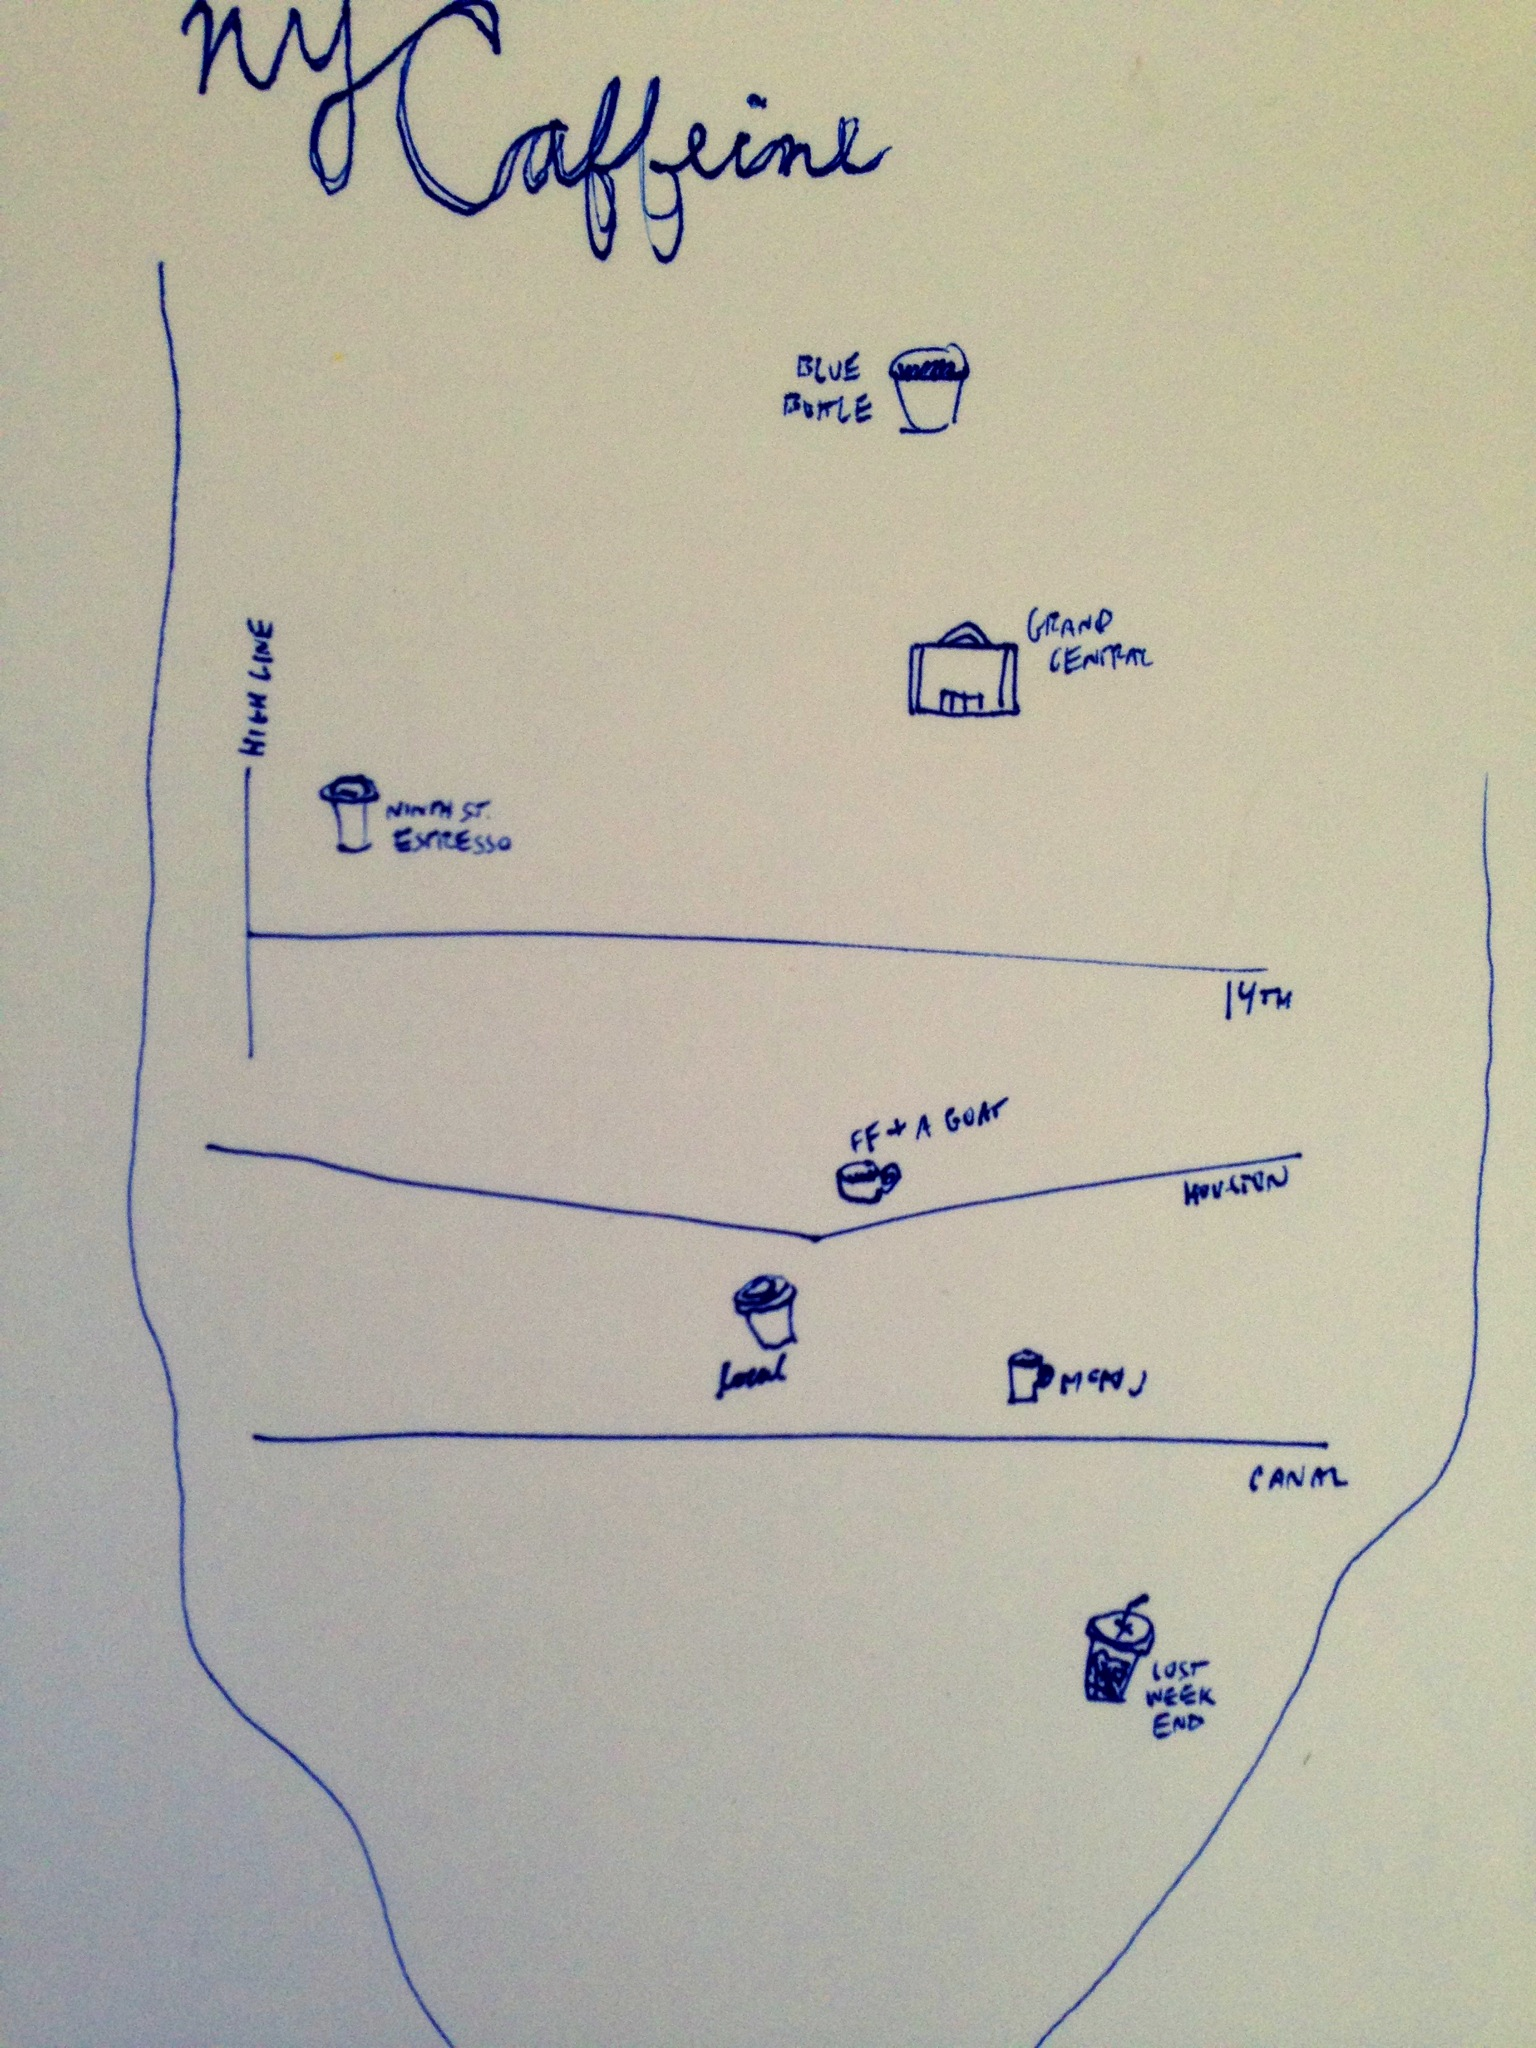 Autocartography TBD  - image 4 - student project